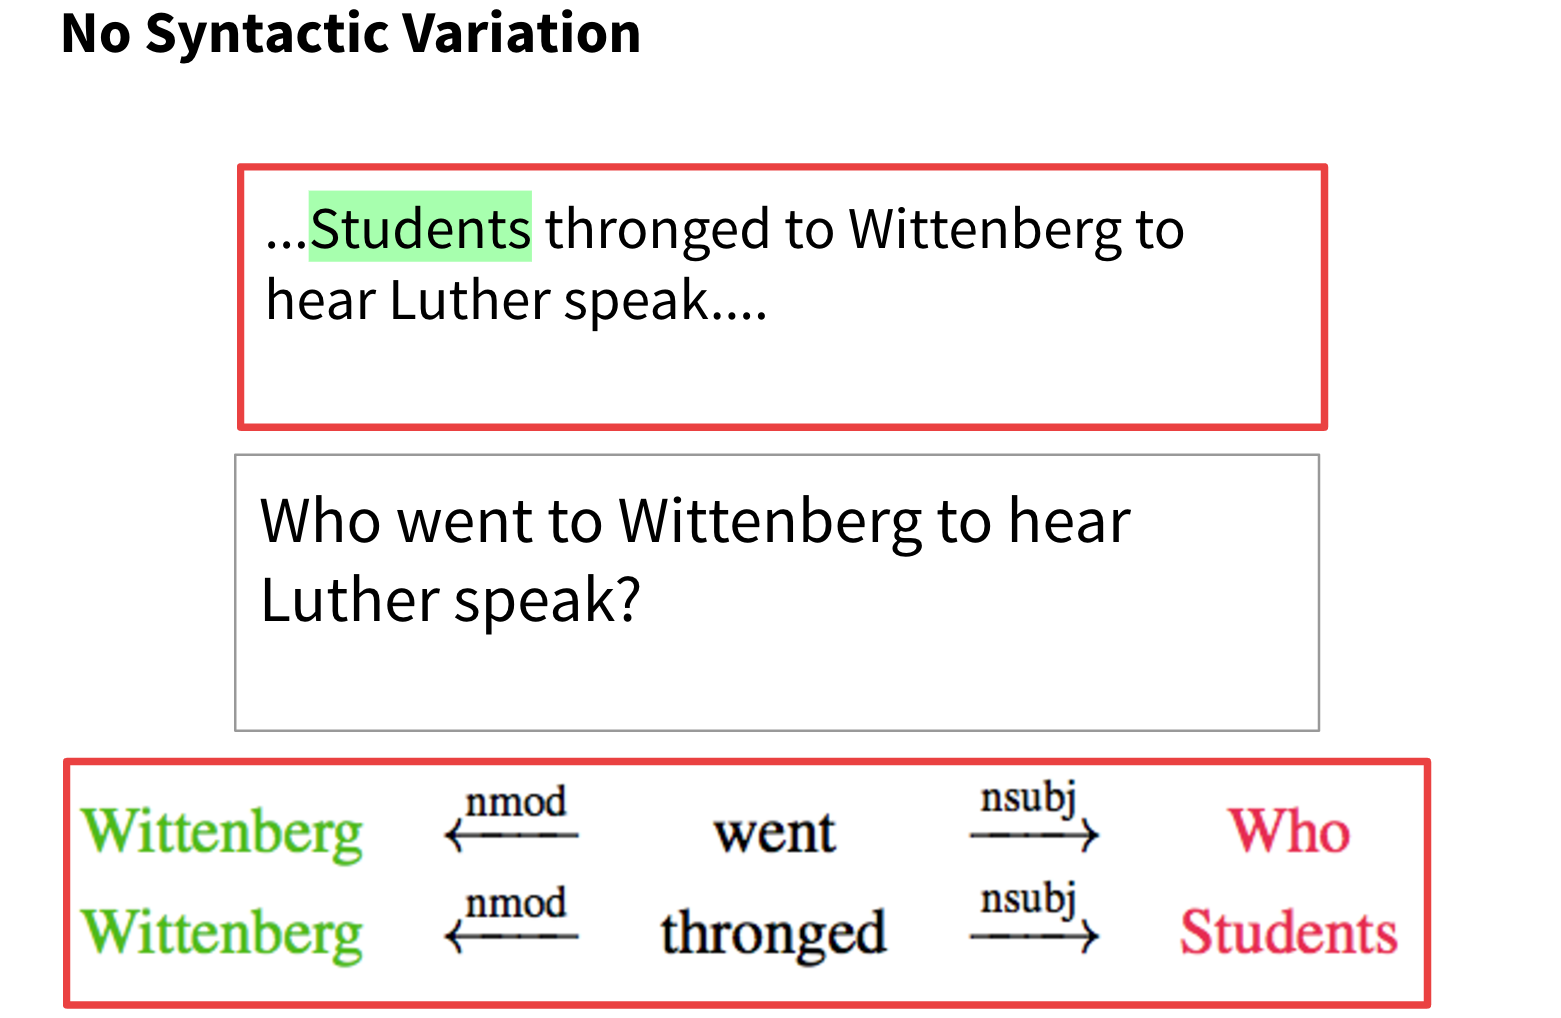 Here's a question which does not require handling of syntactic variation. The question and the passage have matching syntactic structures 'who went to wittenberg', 'students thronged to wittenberg' even though the the question uses the word 'went' and the passage uses the word 'thronged'. Questions without syntactic variation are relatively easy to answer because the syntactic structure gives all of the information needed to answer it.